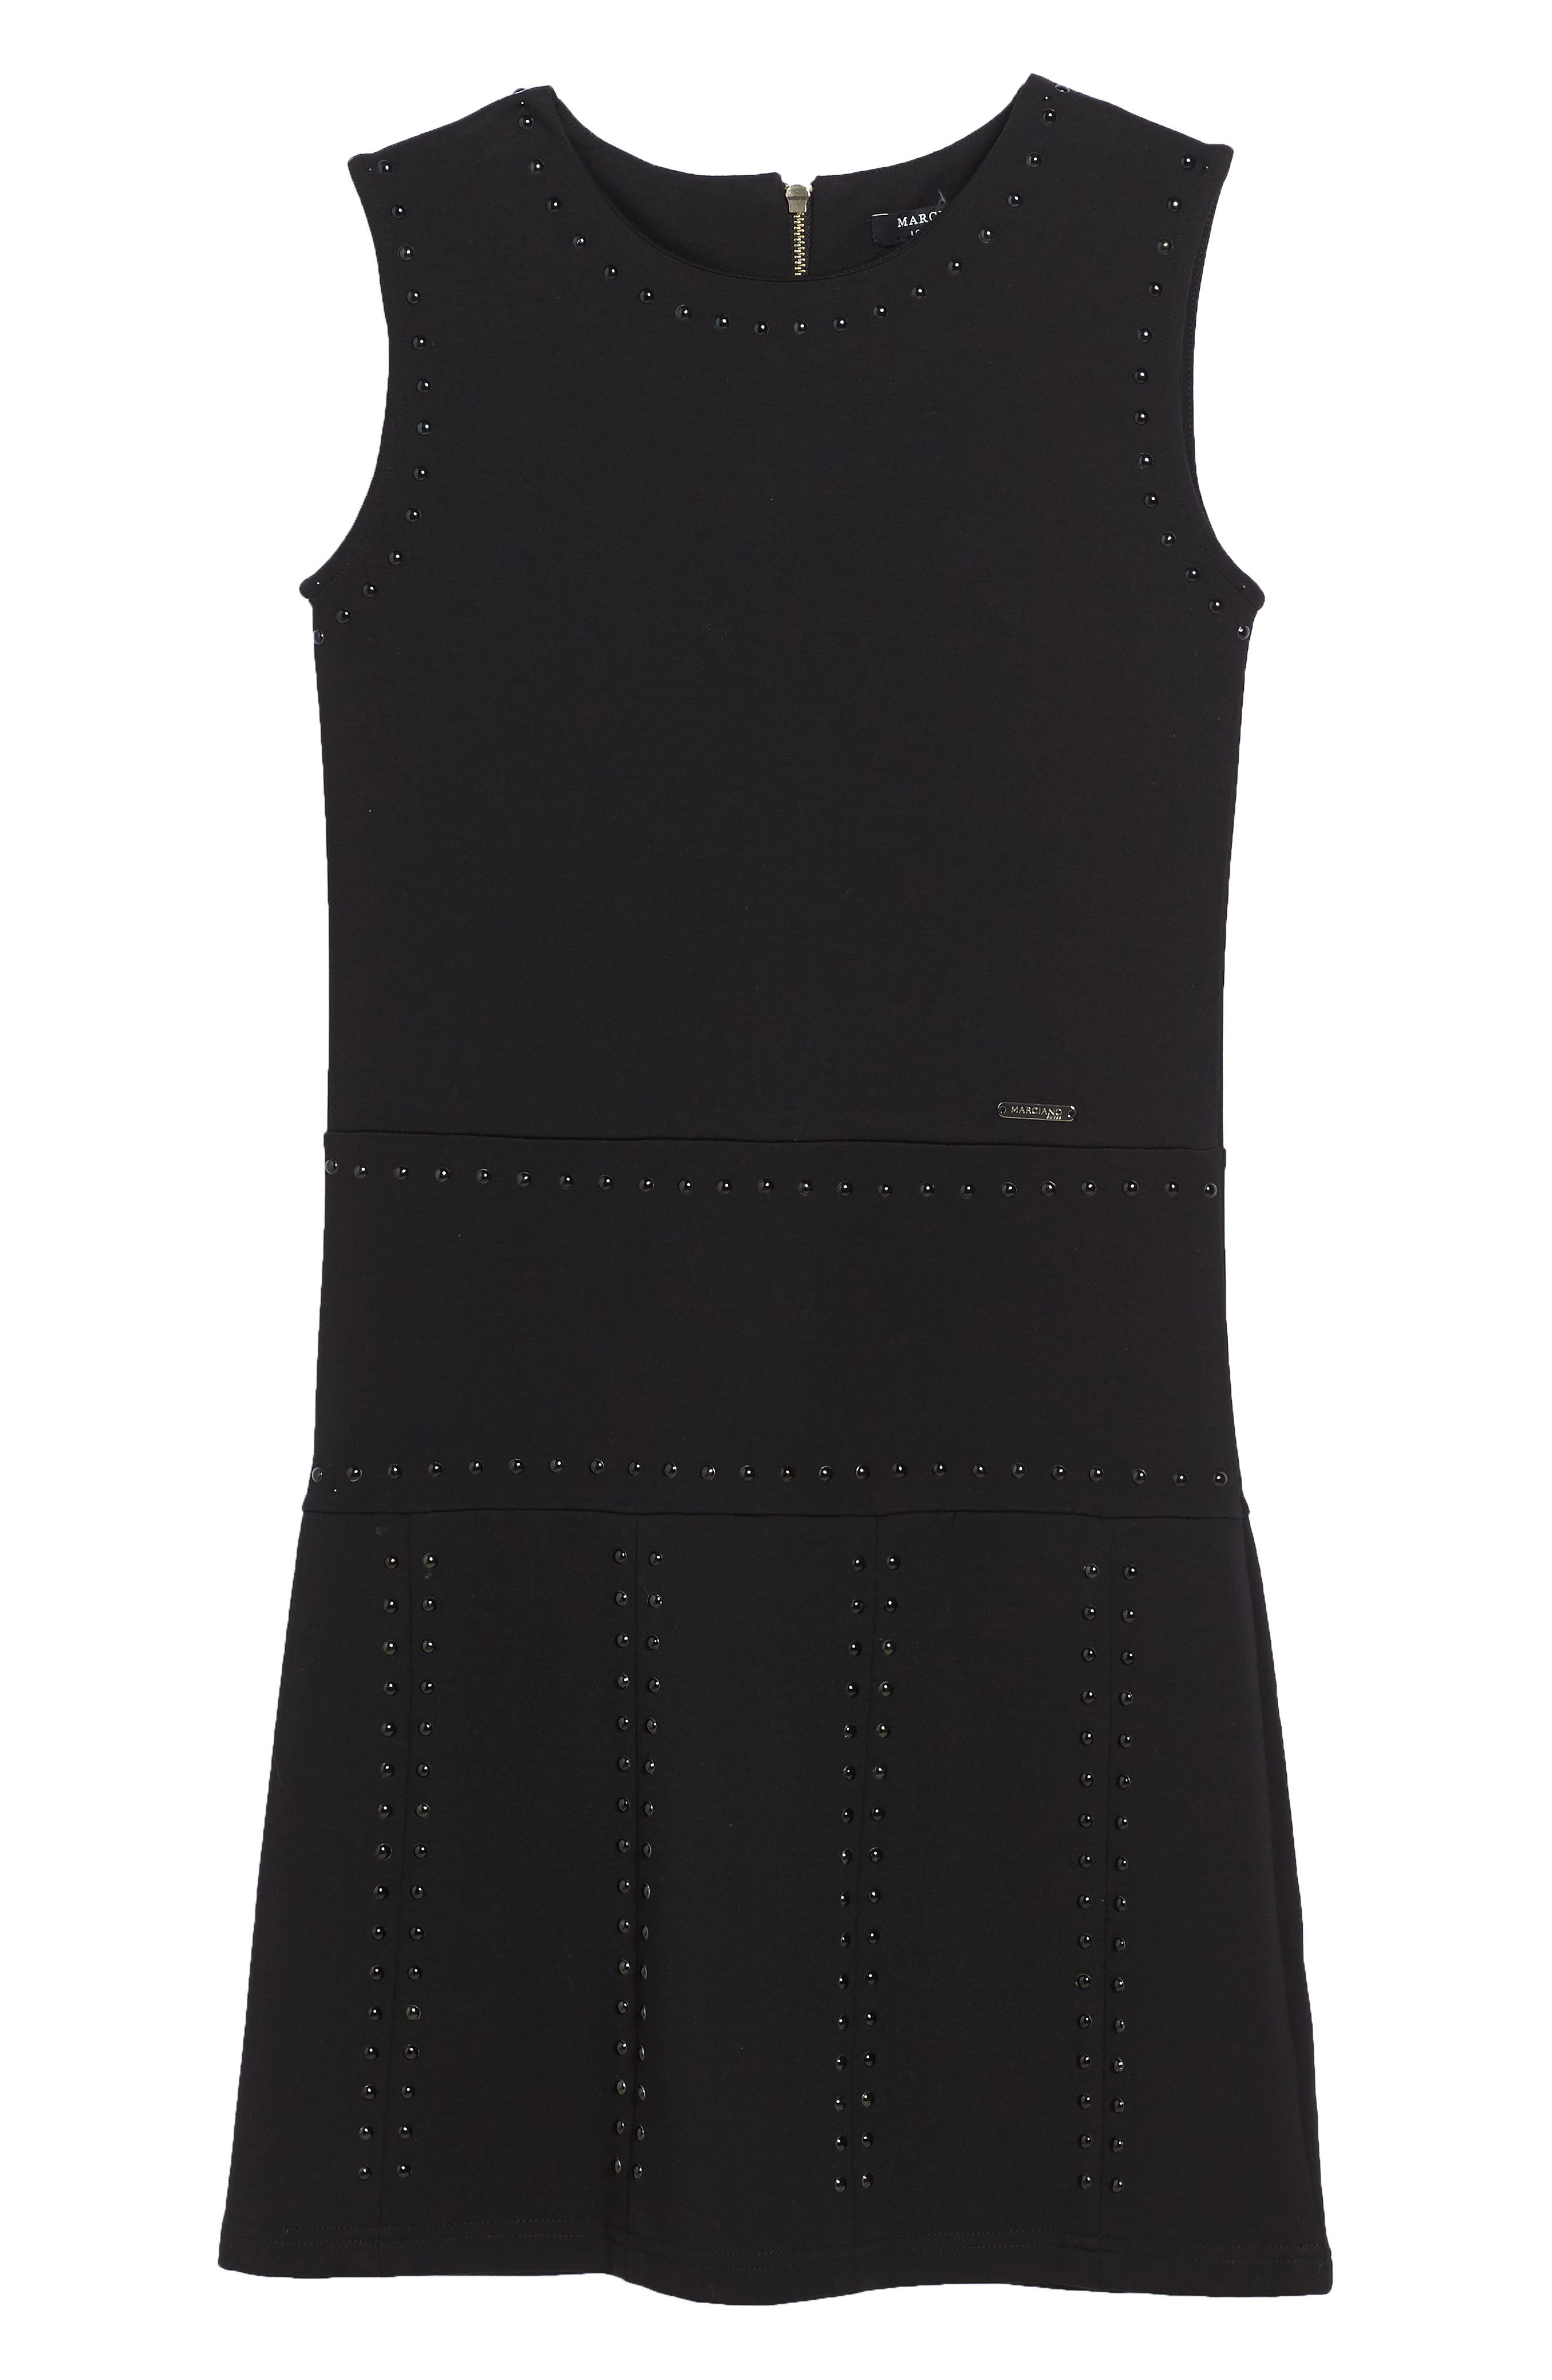 Main Image - Marciano Studded Sleeveless Dress (Big Girls)